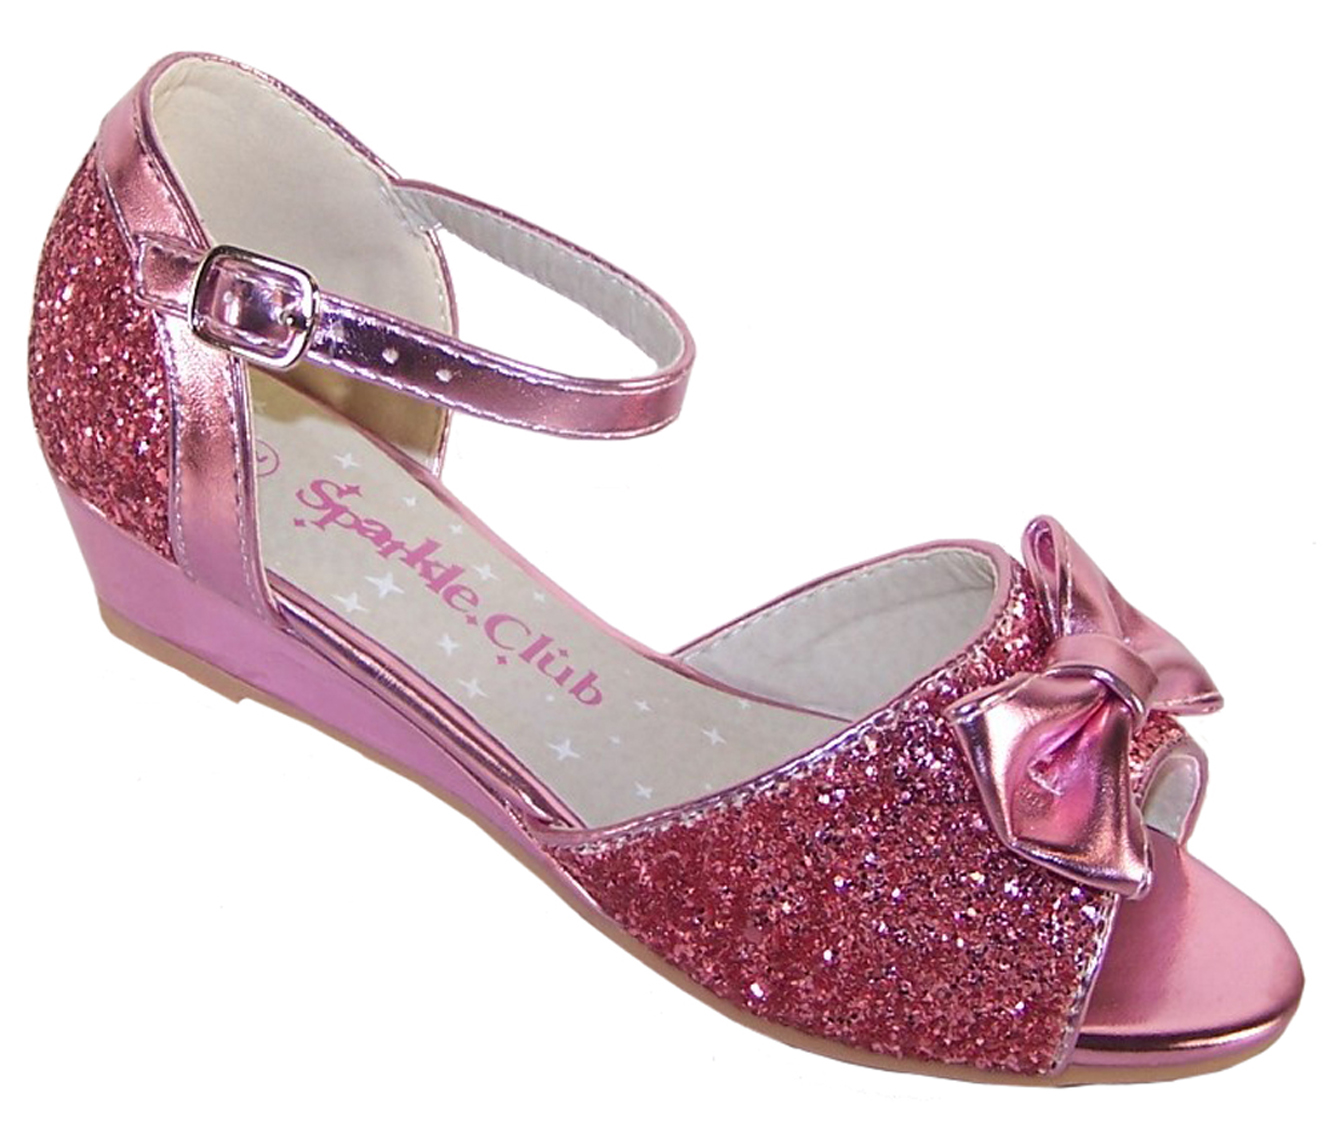 Buy Girls Childs Pink Sparkly Shoes